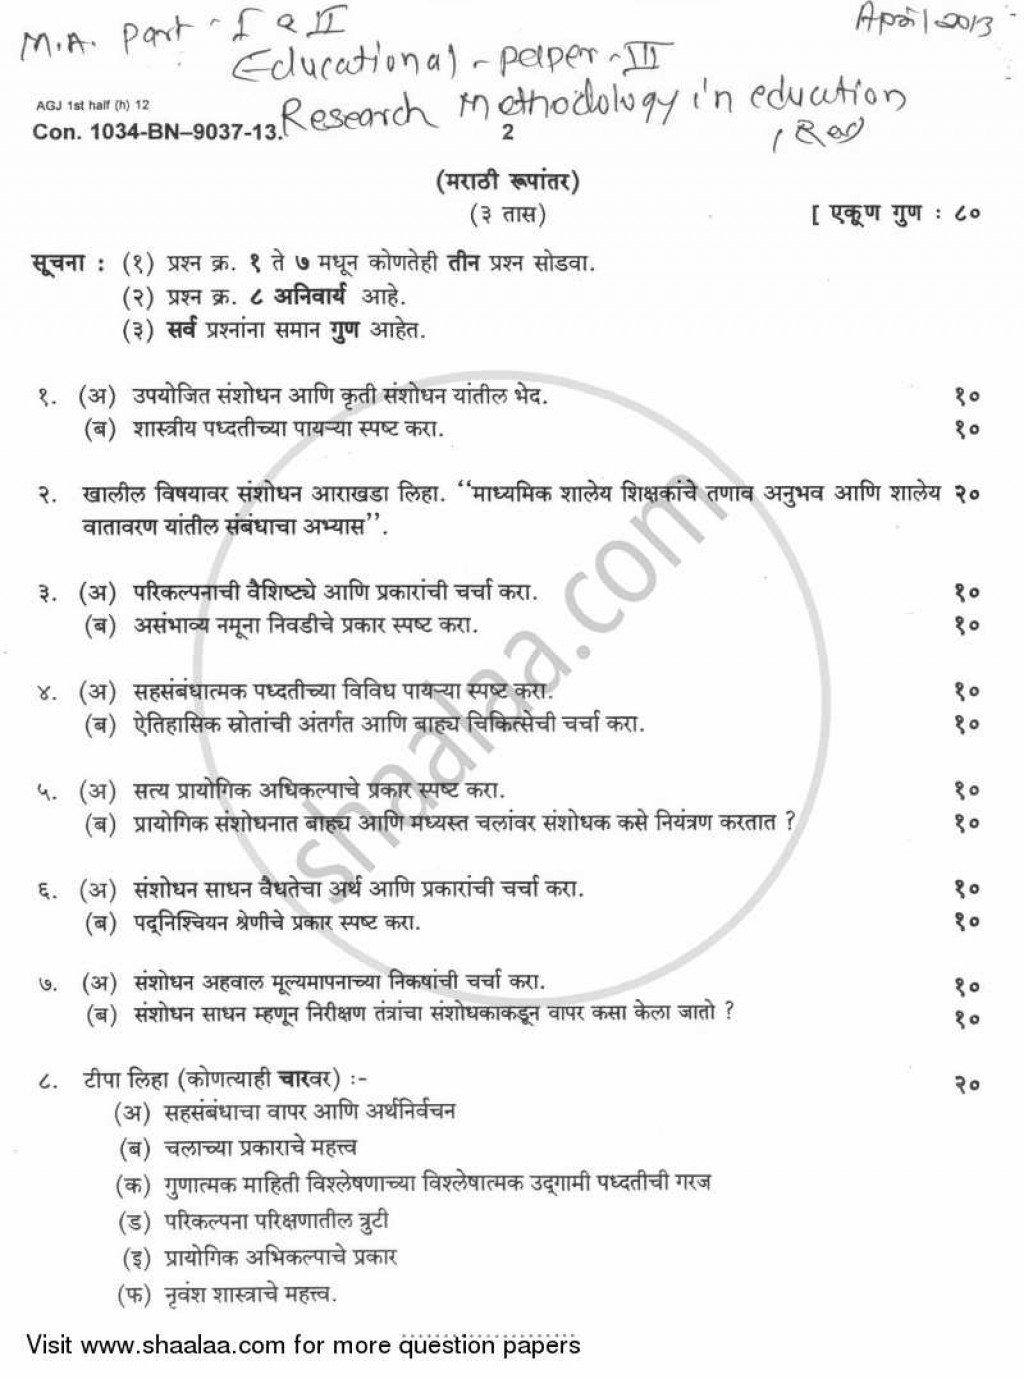 016 University Of Mumbai Master Ma Research Methodology Education Yearly Pattern Part 2012 2773731d8b9ed4a82aab006785367985a Paper Example Beautiful In Engineering Experimental Section Large